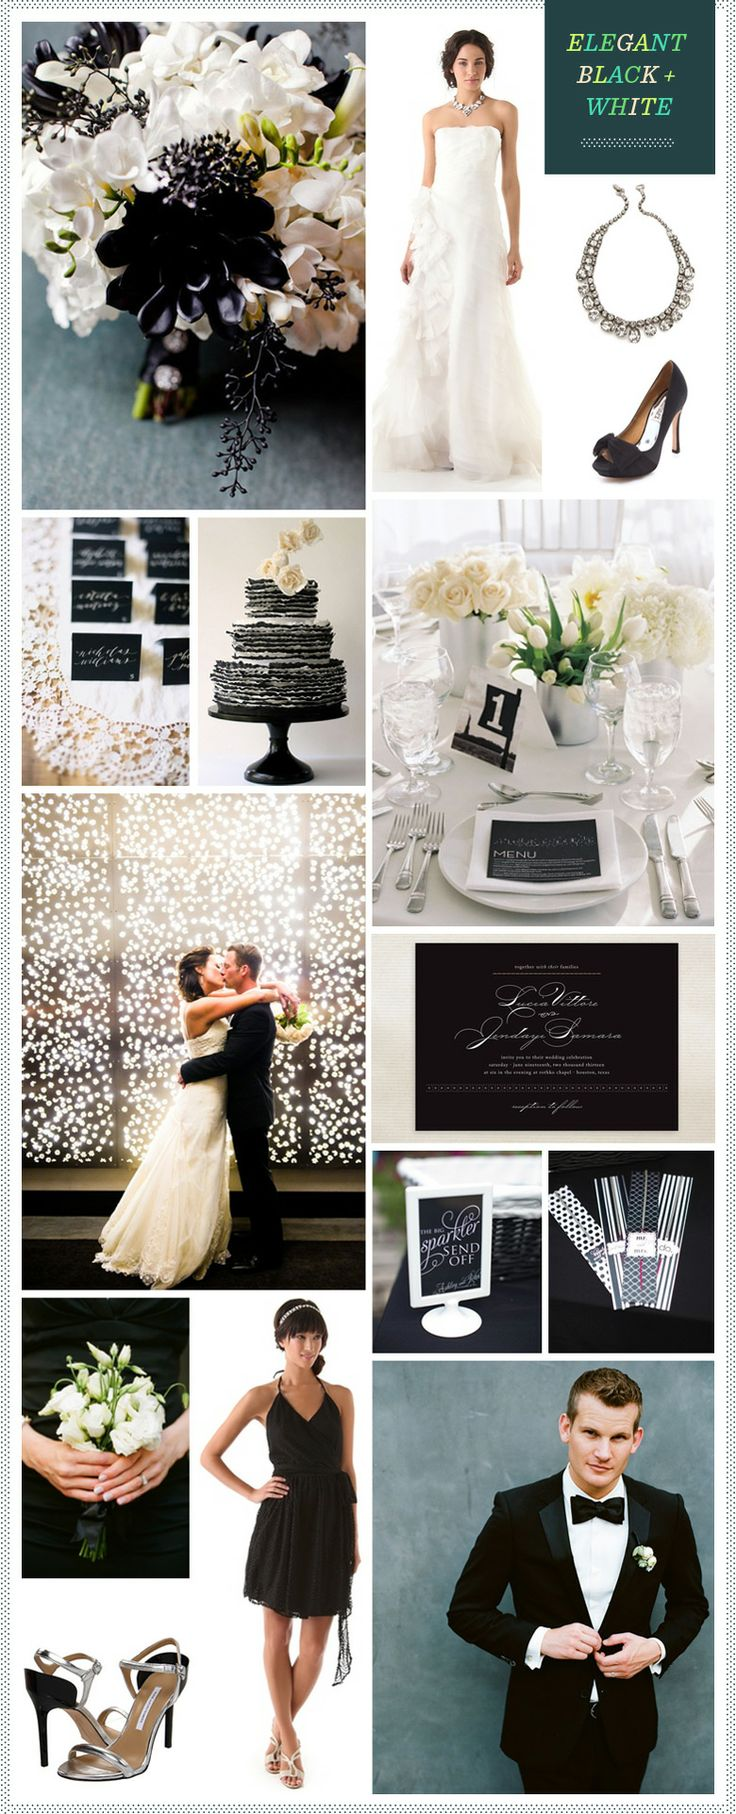 Black + White Wedding Ideas #Black & White wedding receptions ... Wedding ideas for brides, grooms, parents & planners ... https://itunes.apple.com/us/app/the-gold-wedding-planner/id498112599?ls=1=8 … plus how to organise an entire wedding, without overspending ♥ The Gold Wedding Planner iPhone App ♥